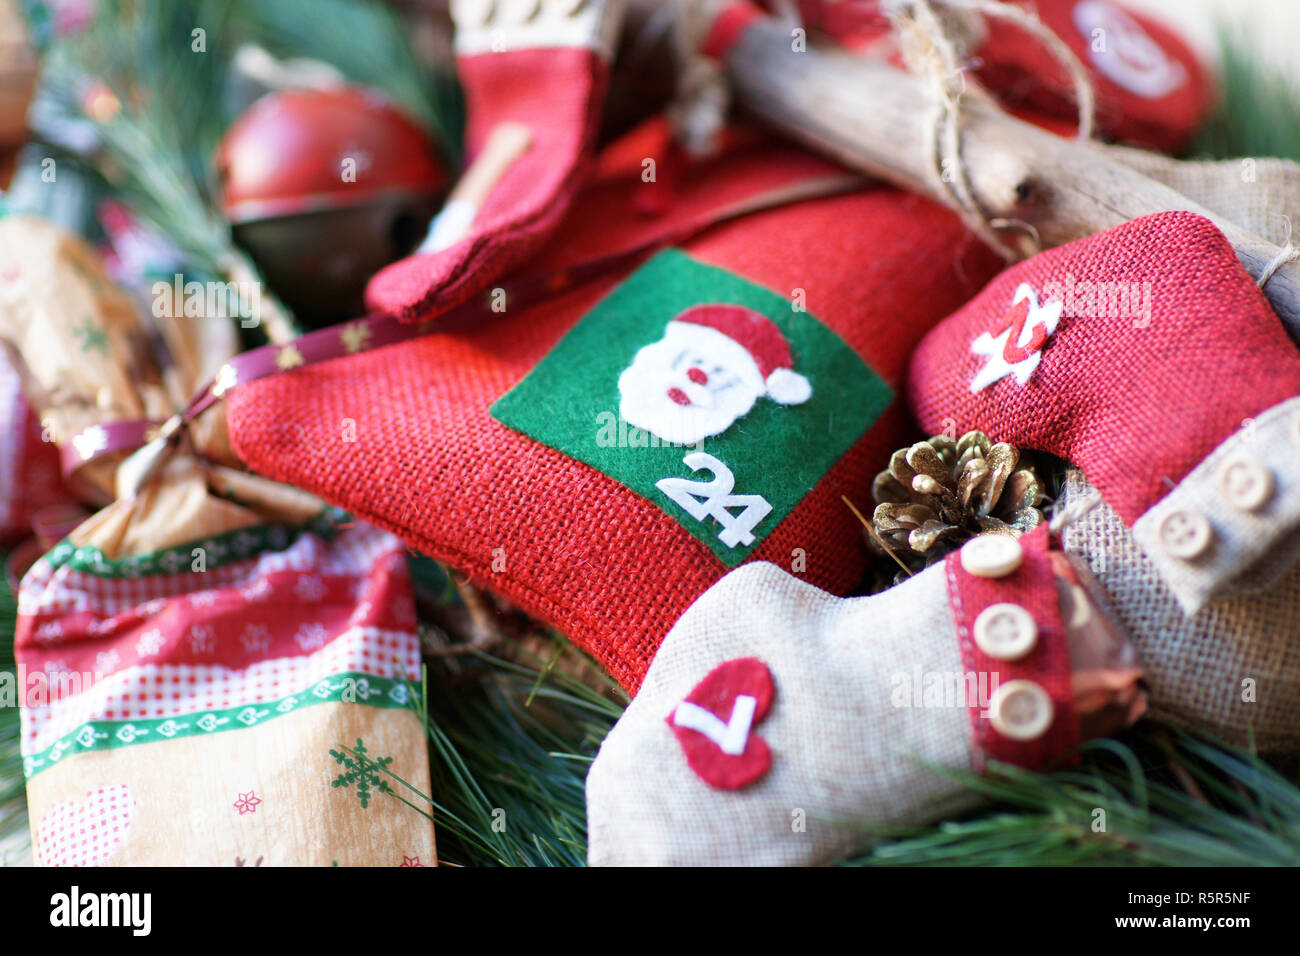 Advent Calendar Self Made 24 December Santa Claus - Stock Image